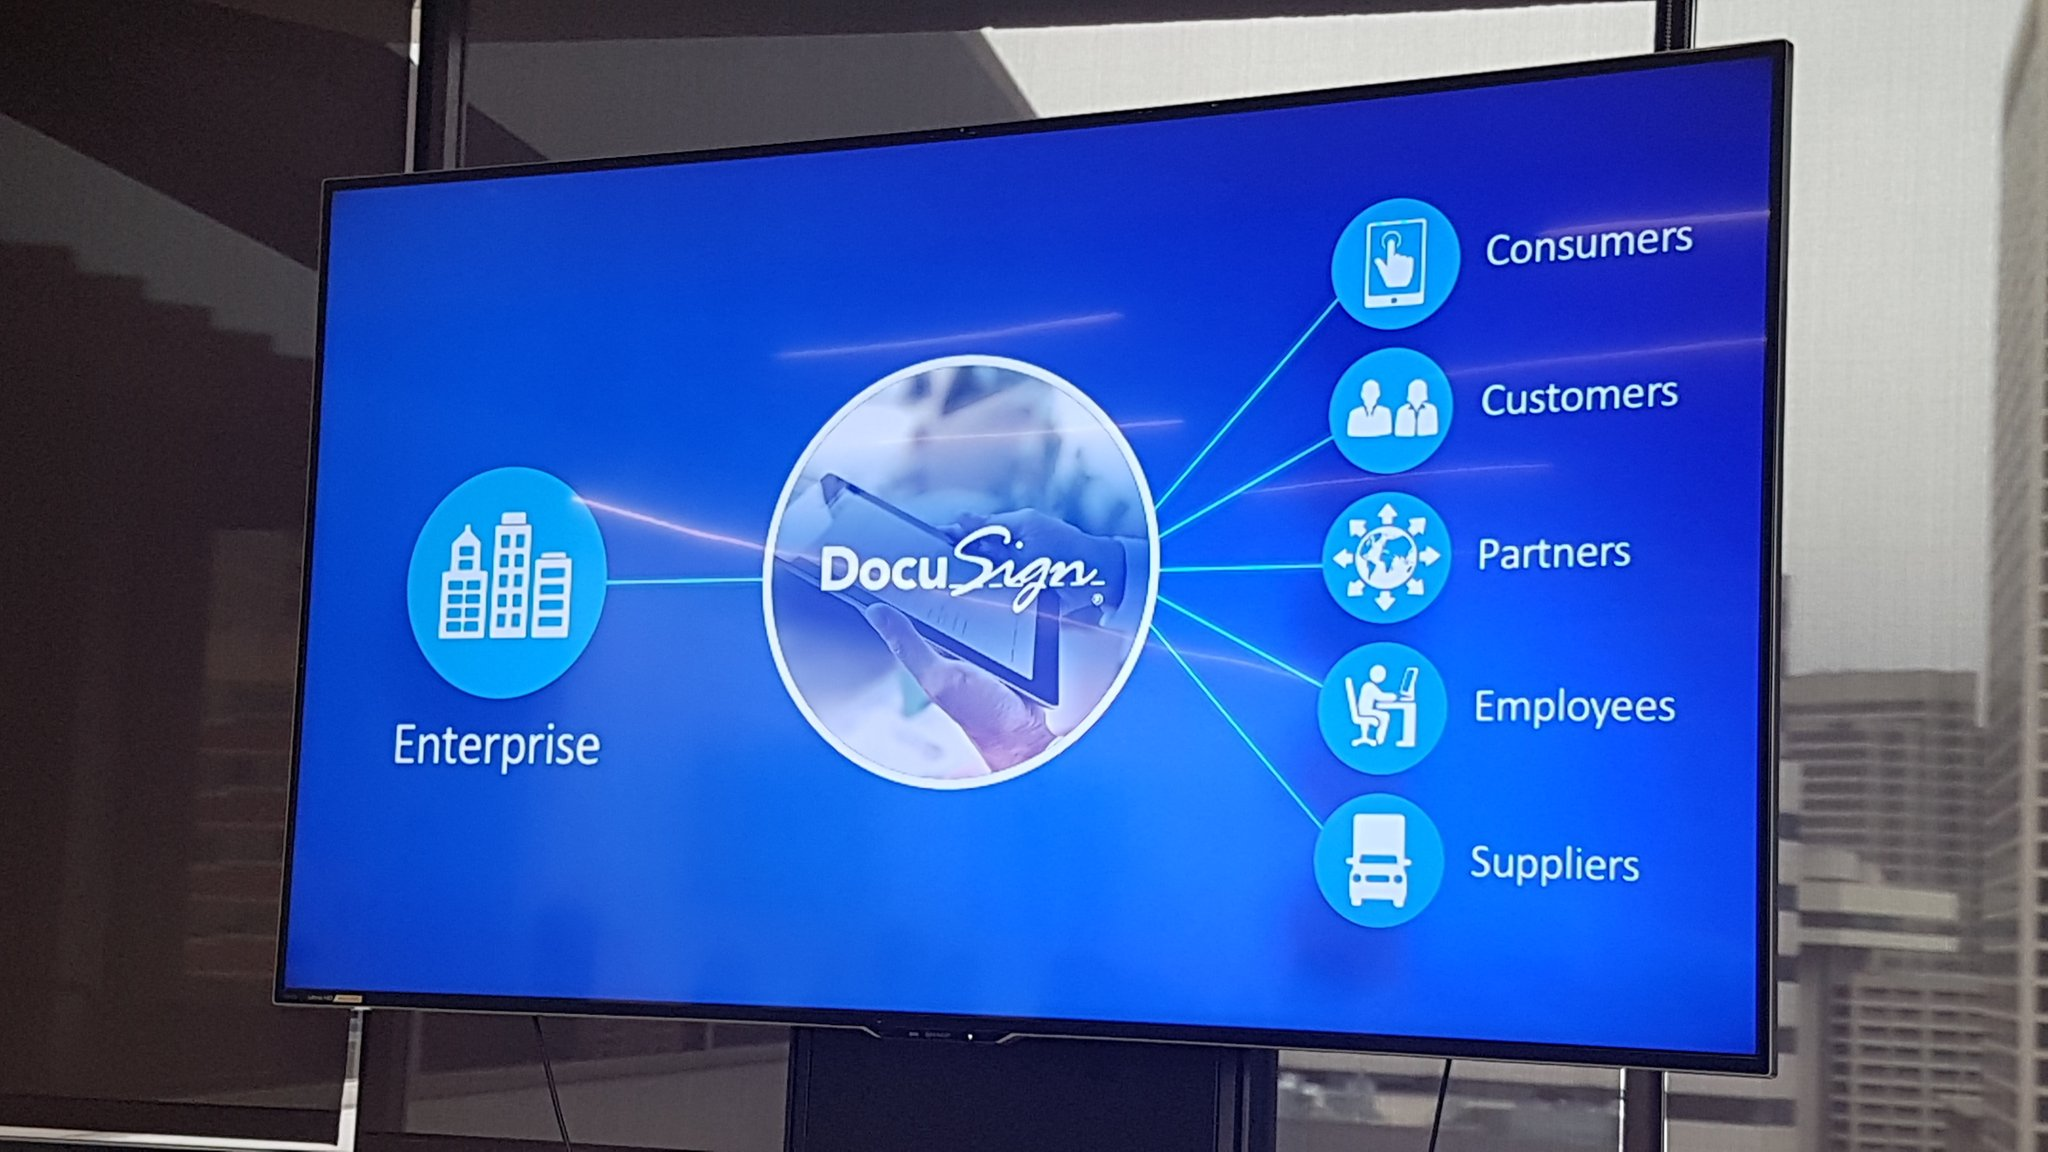 DocuSign product in a presentation about Enterprise sector